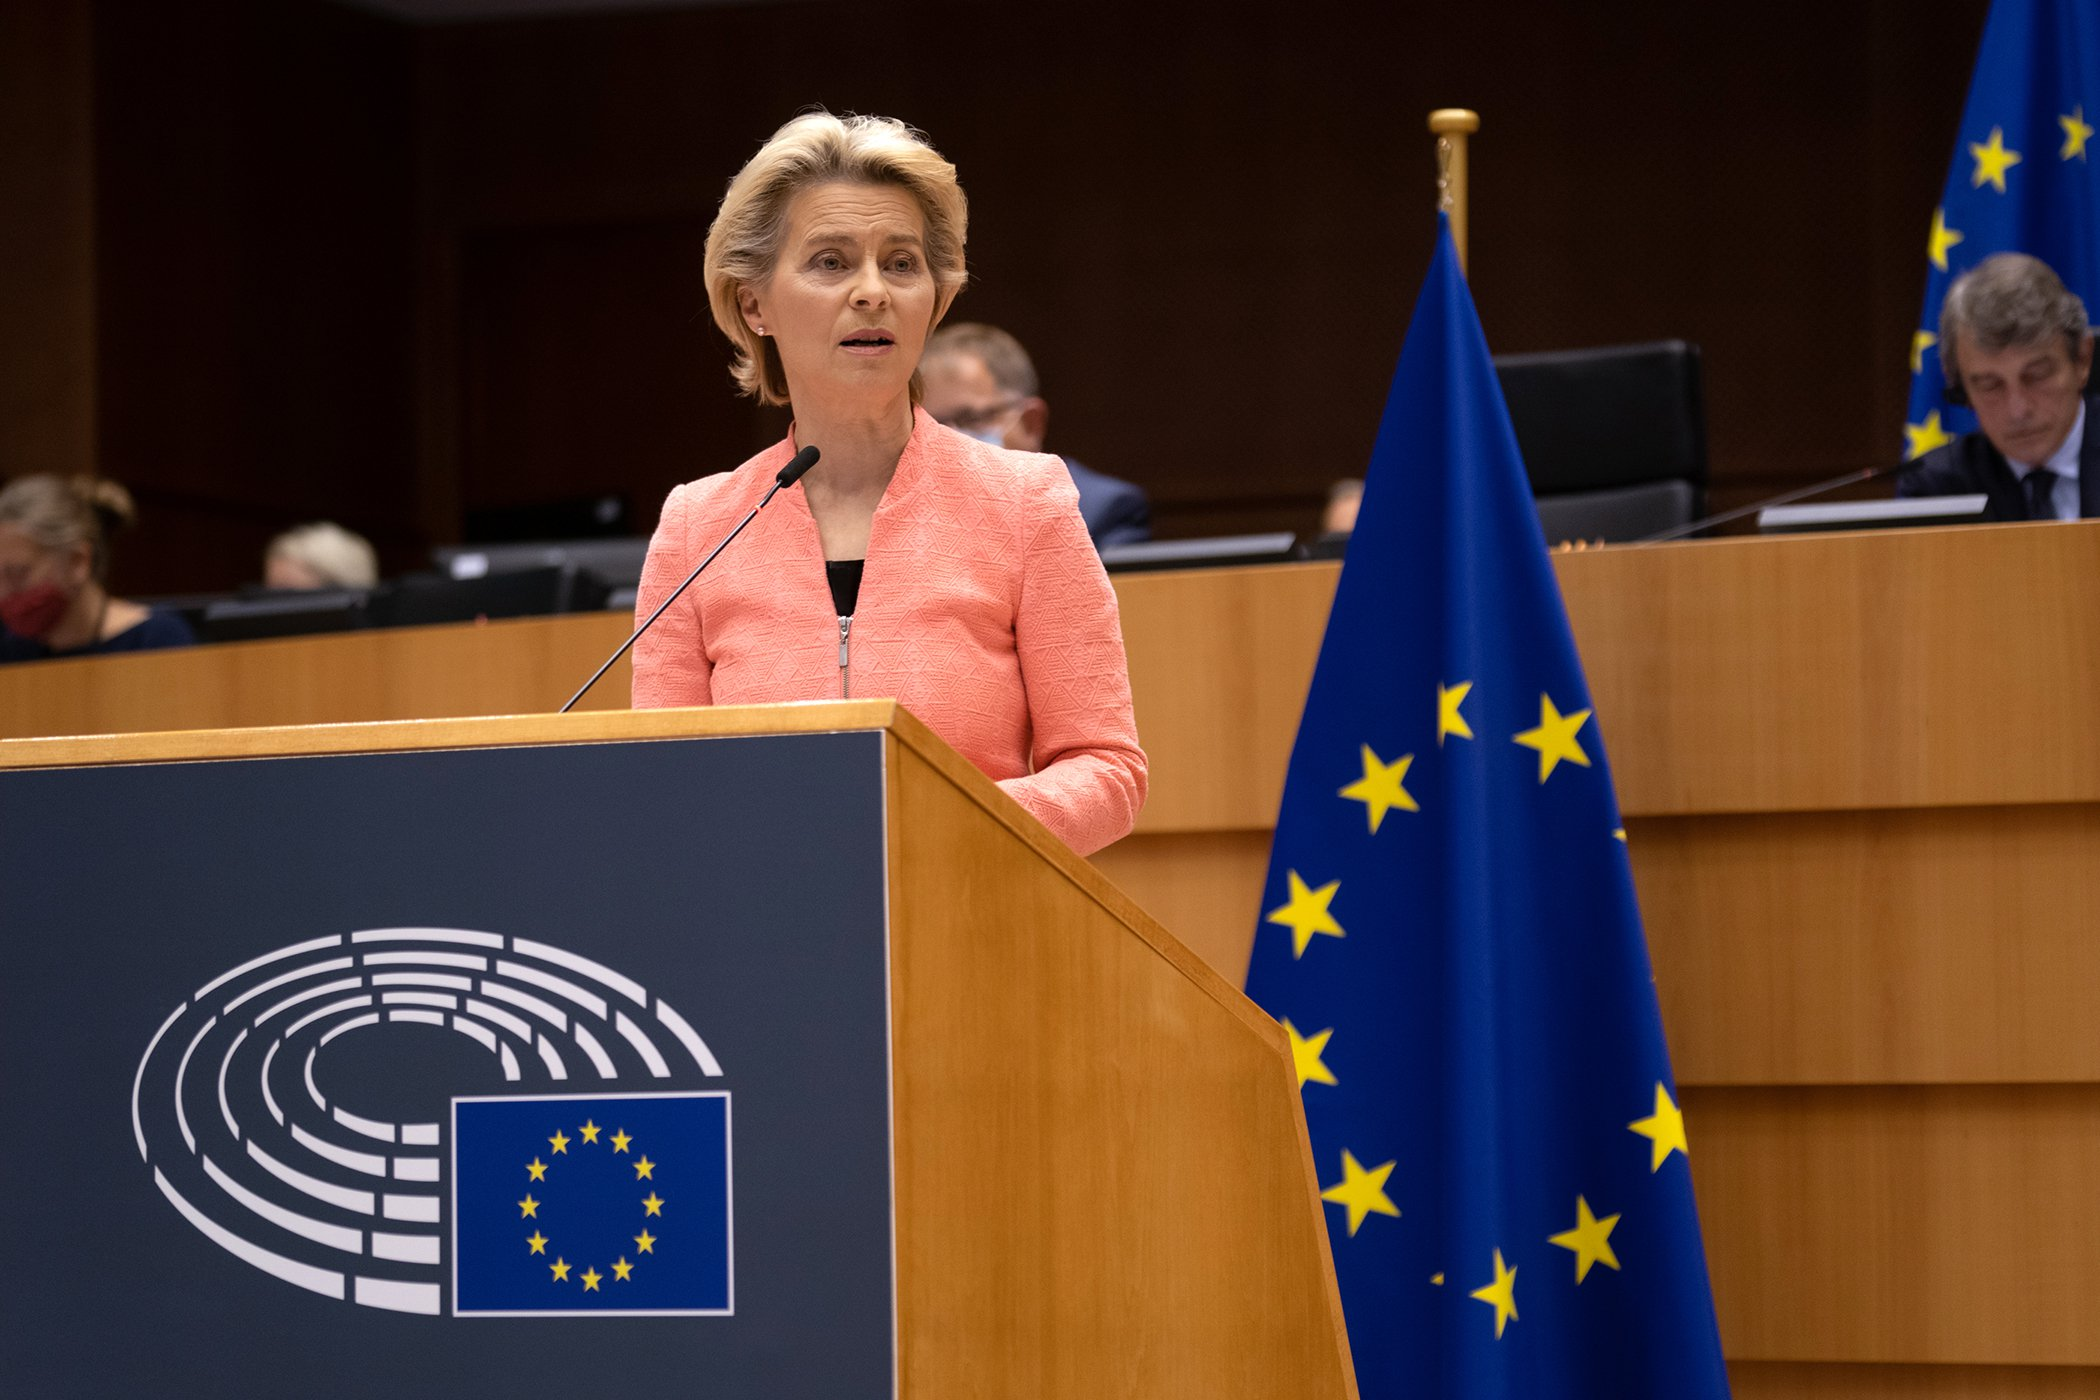 EuropeanCommission-Ursula von der Leyen-Women-World-Leaders-GCPrize.jpg